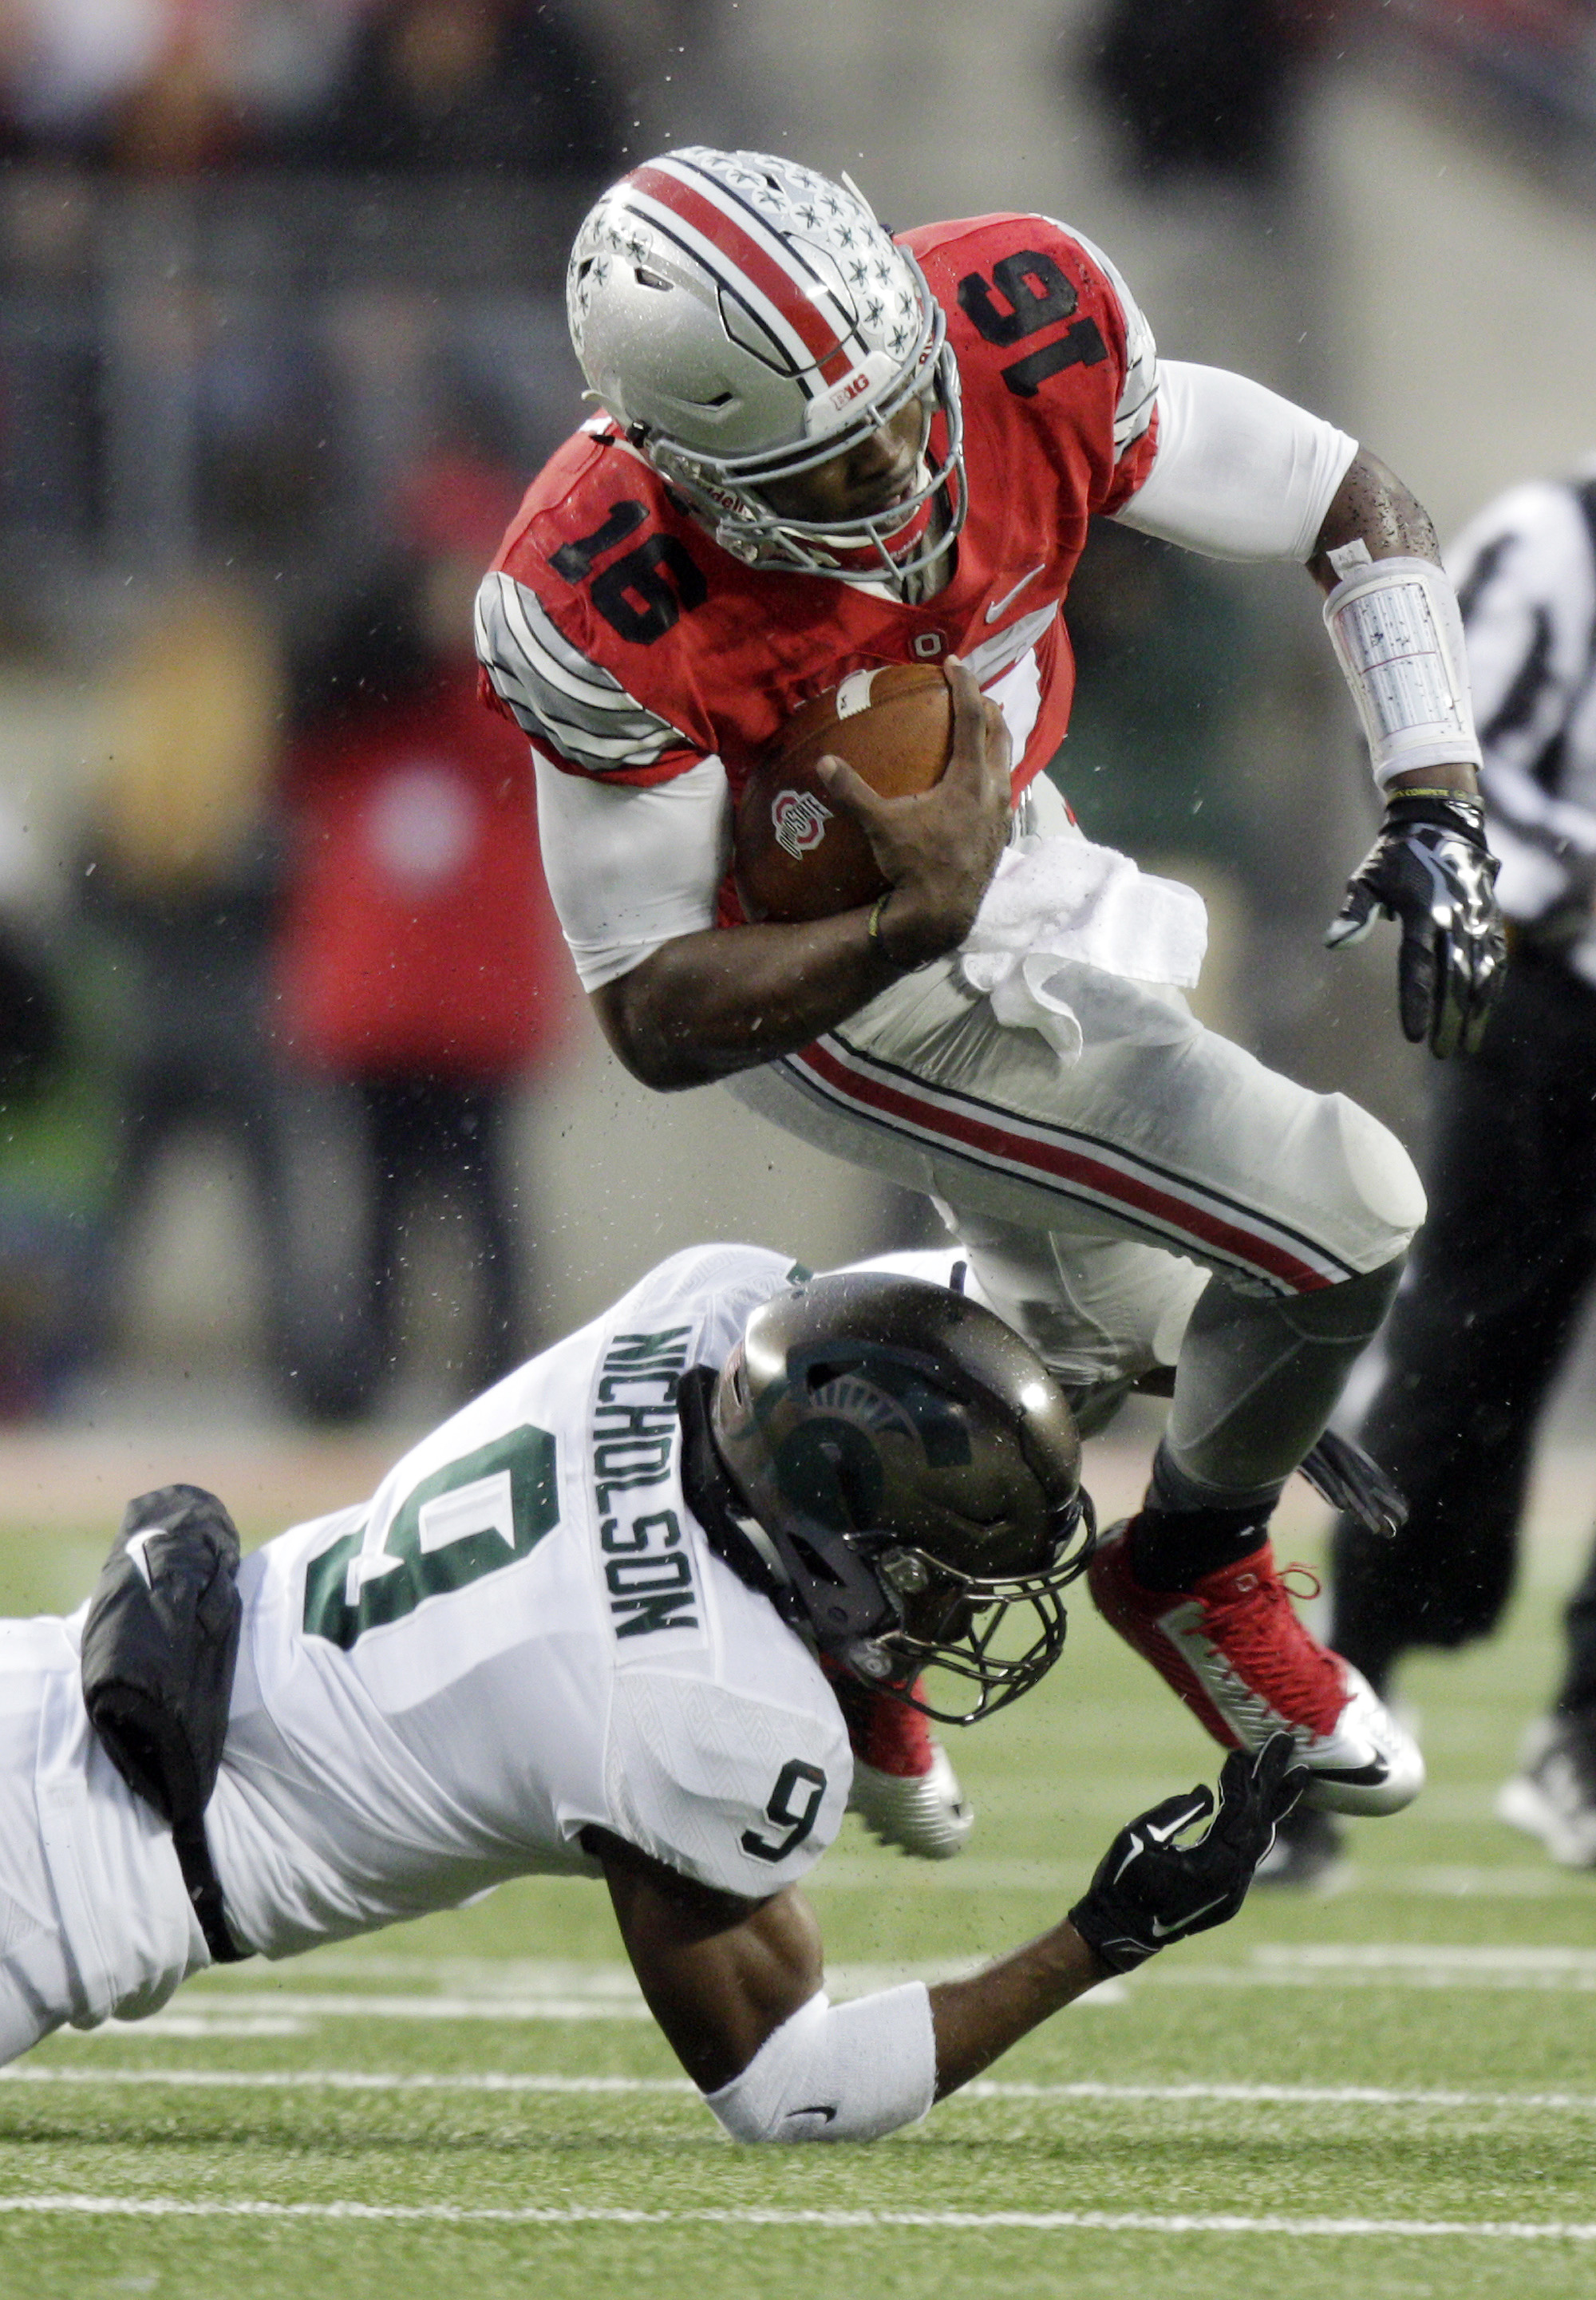 Michigan State safety Montae Nicholson, left, tackles Ohio State running back Ezekiel Elliott during the first quarter of an NCAA college football game, Saturday, Nov. 21, 2015, in Columbus, Ohio. (AP Photo/Jay LaPrete)